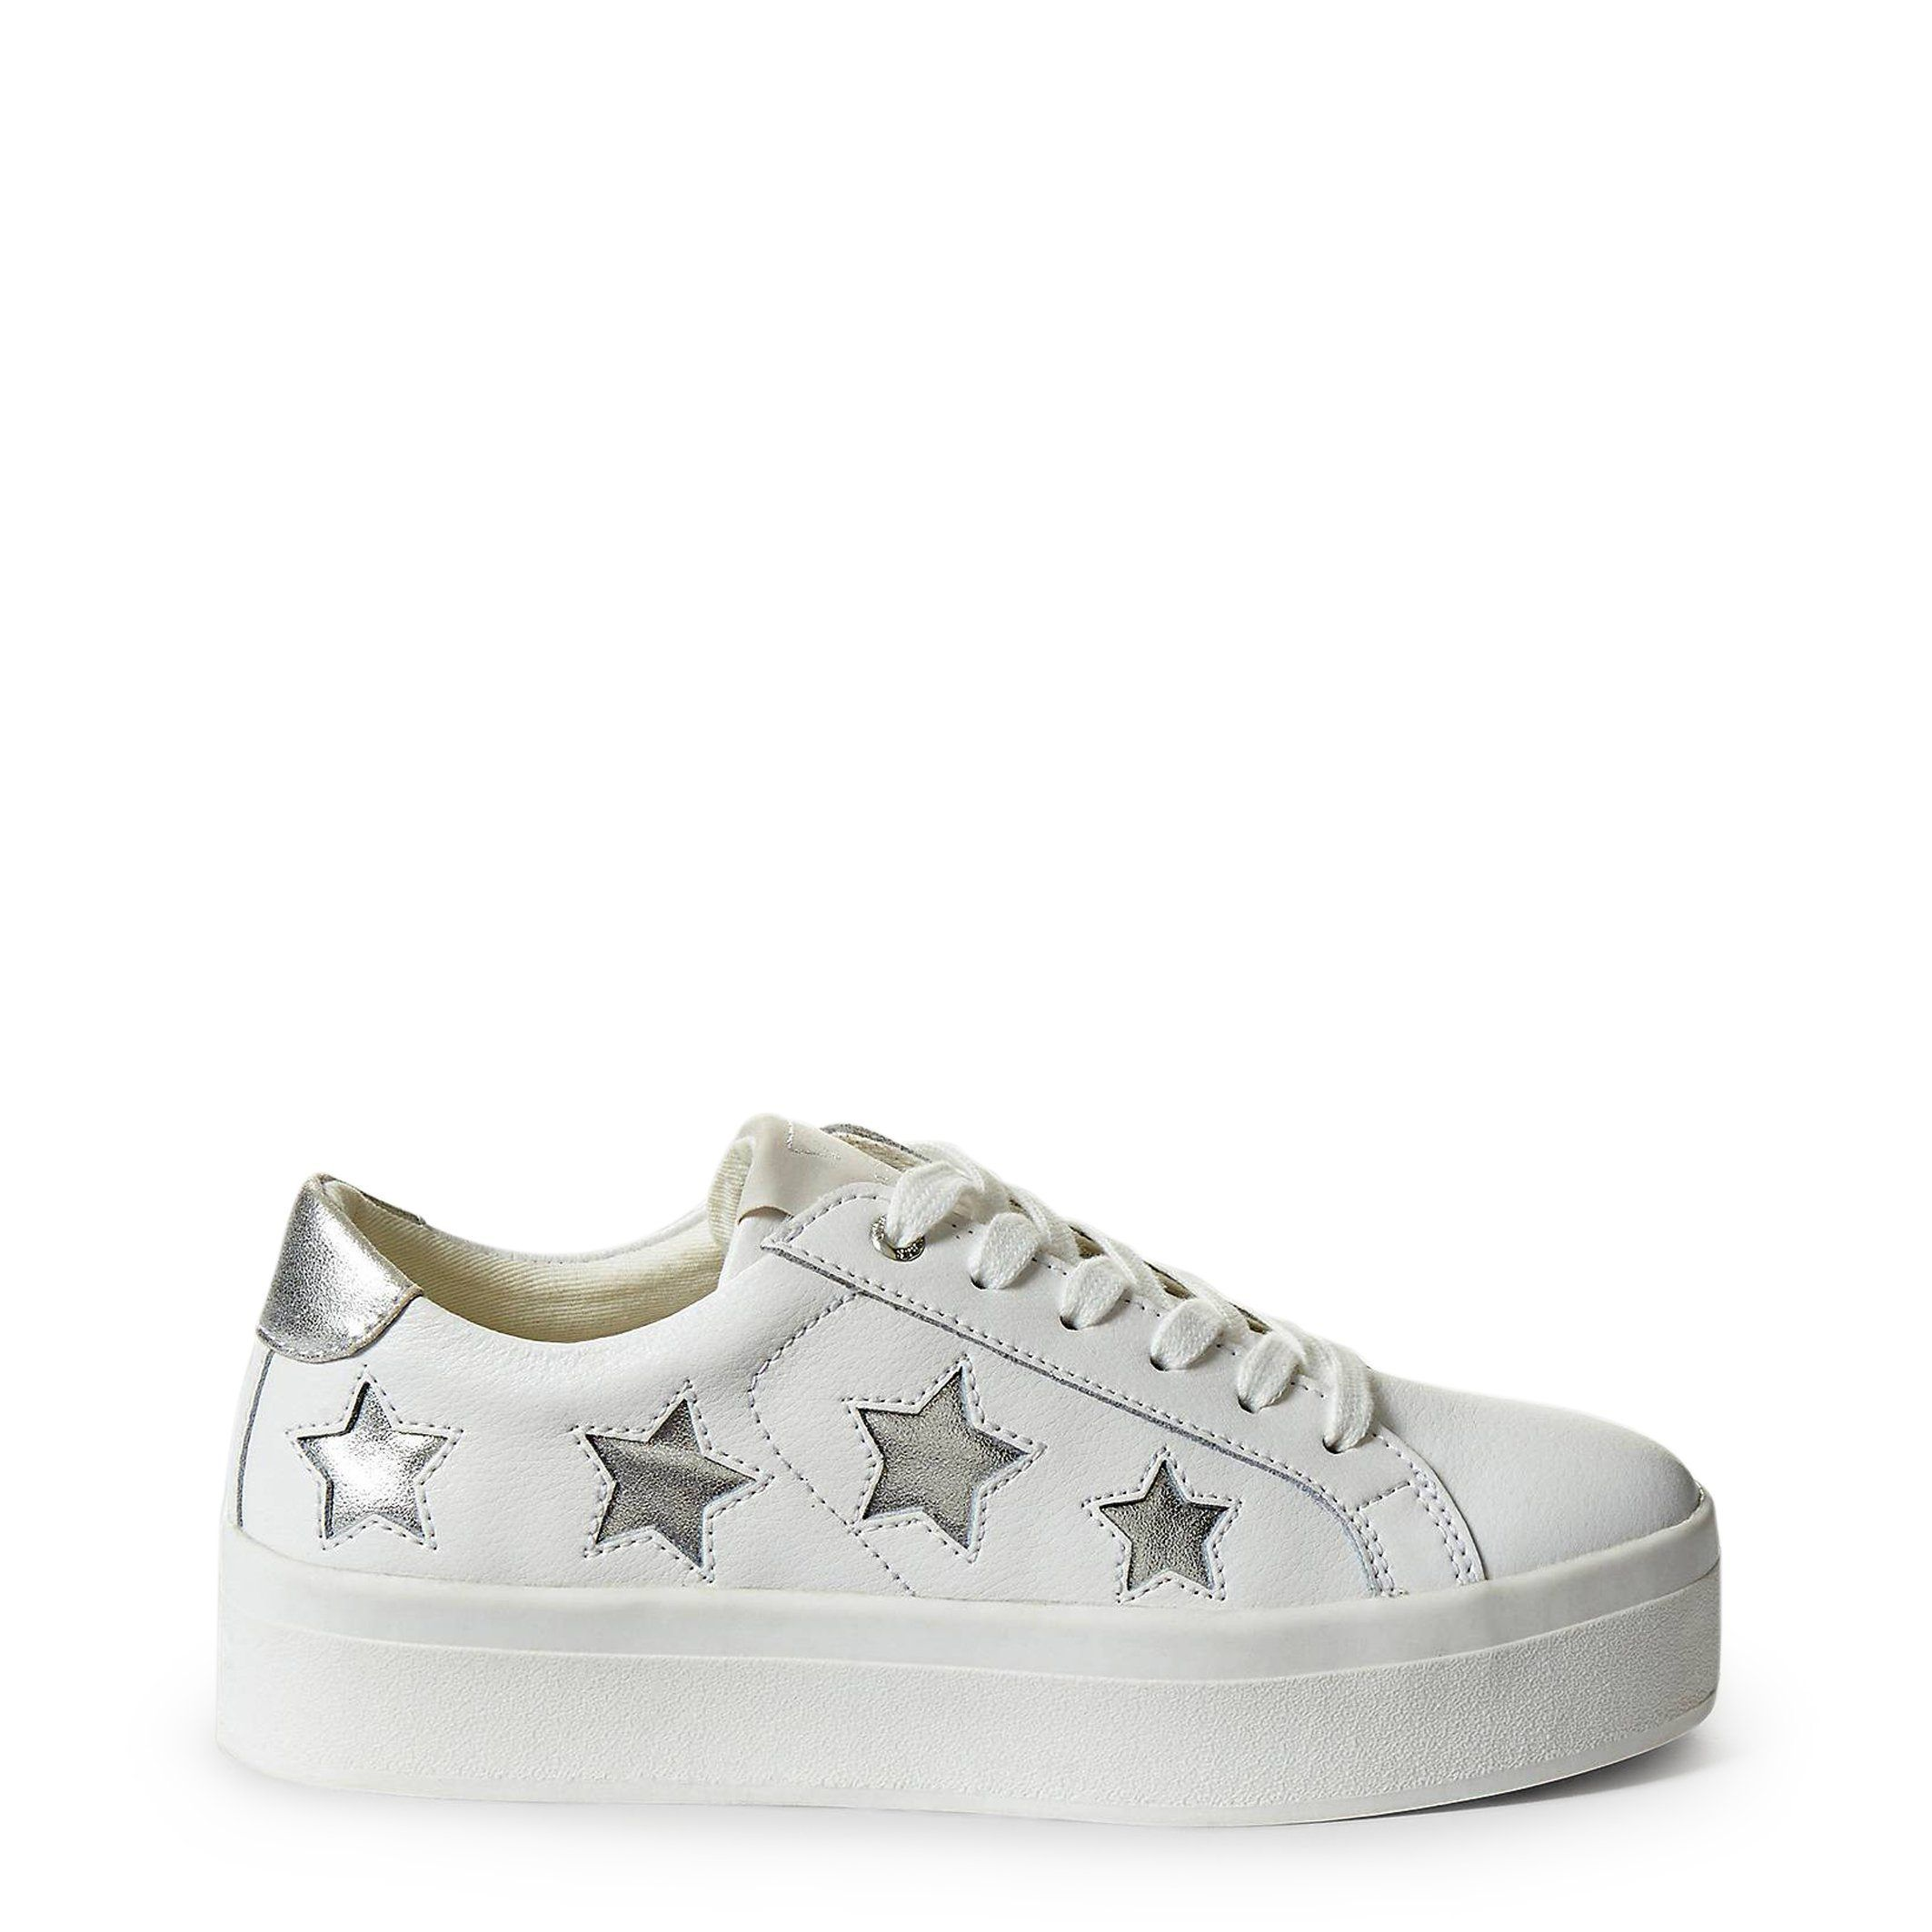 a96898cd5895 Guess Platform Sneakers In White With Stars - Blowout Clearance Sizes 6-8 -  FLFHS3LEA12